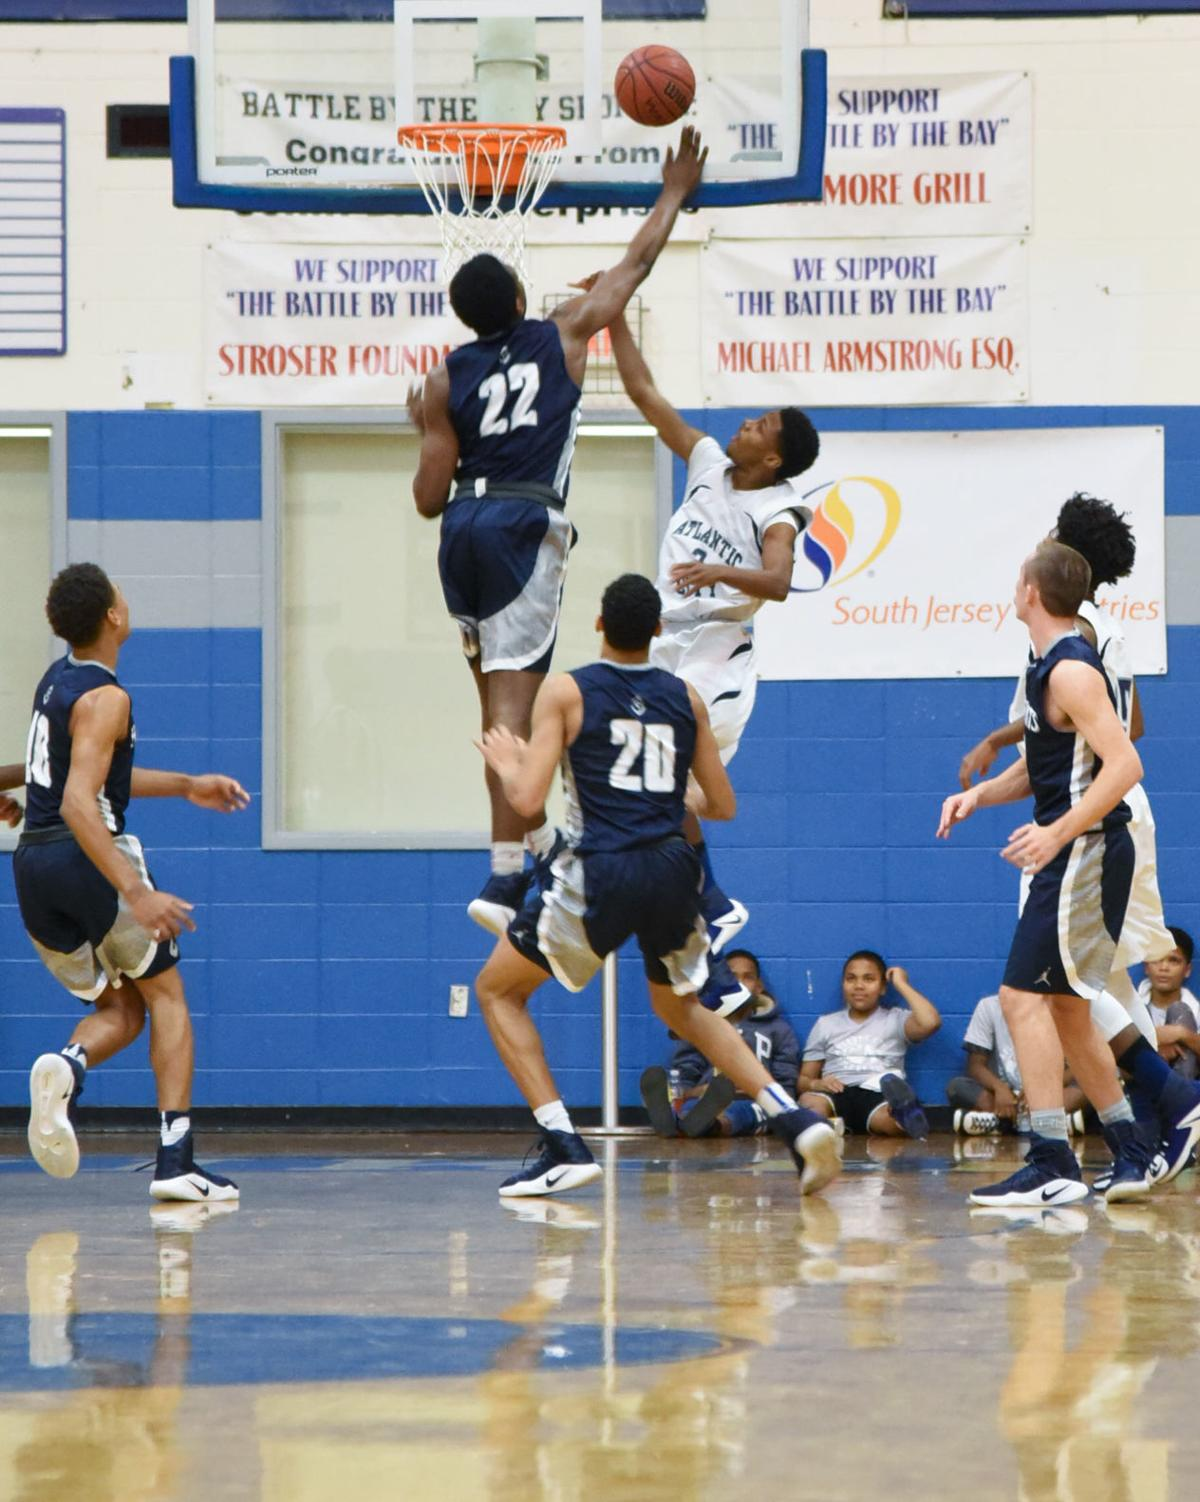 GALLERY: A look back at the Battle by the Bay | High School